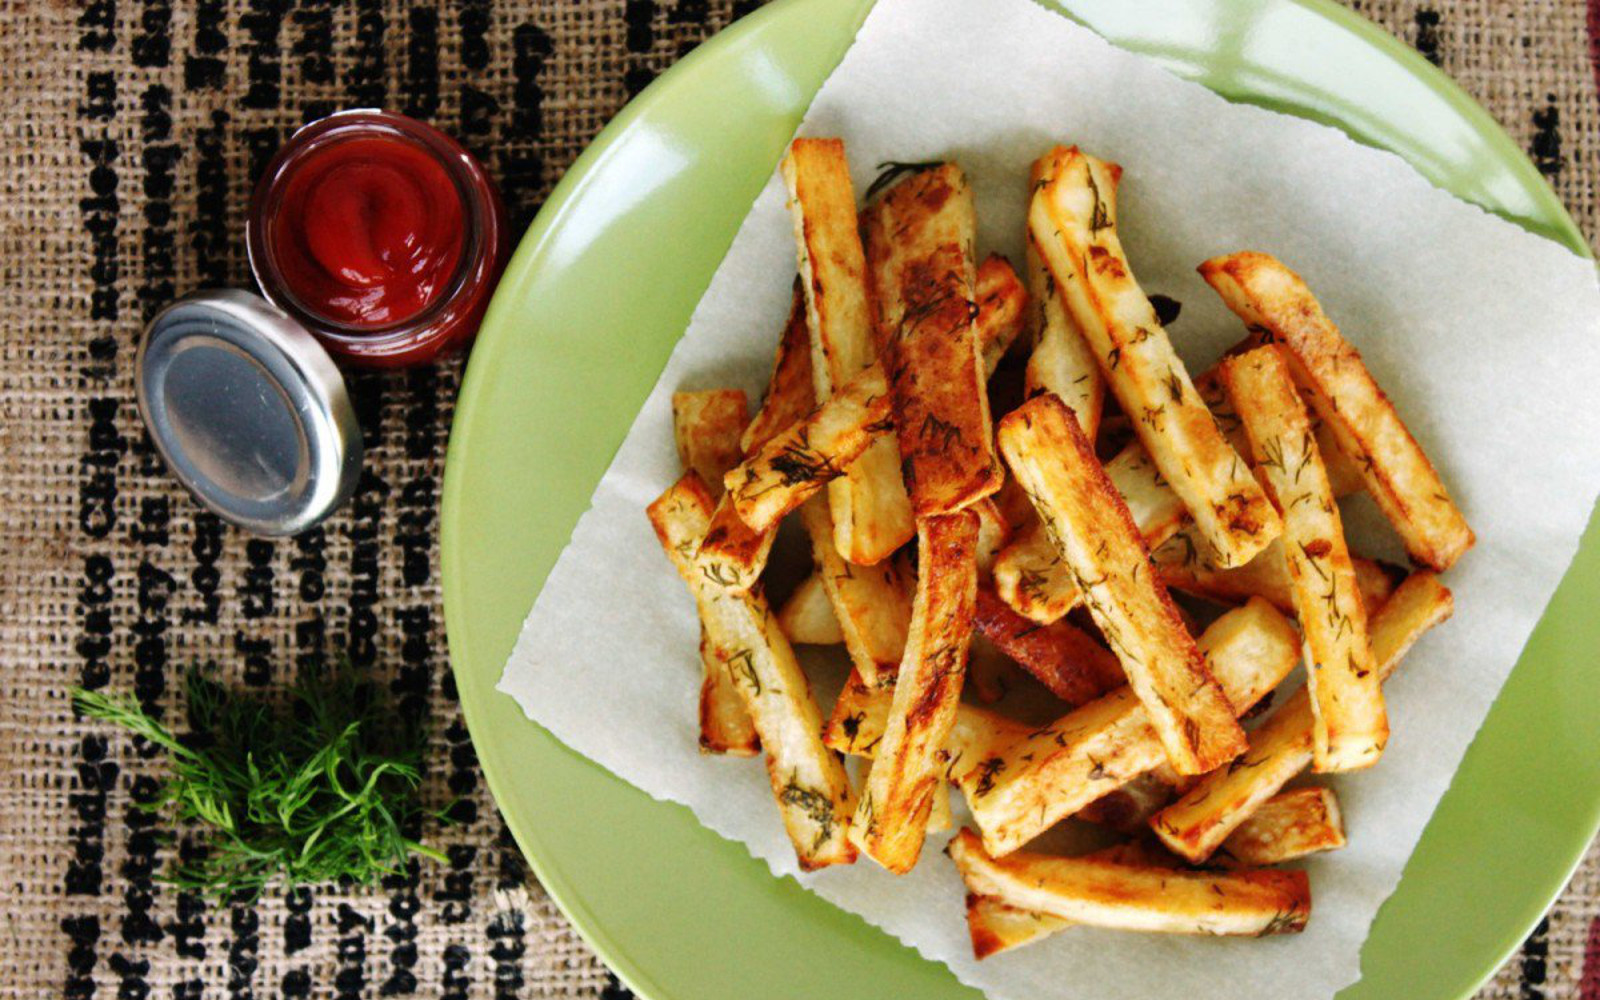 dill pickle french fries